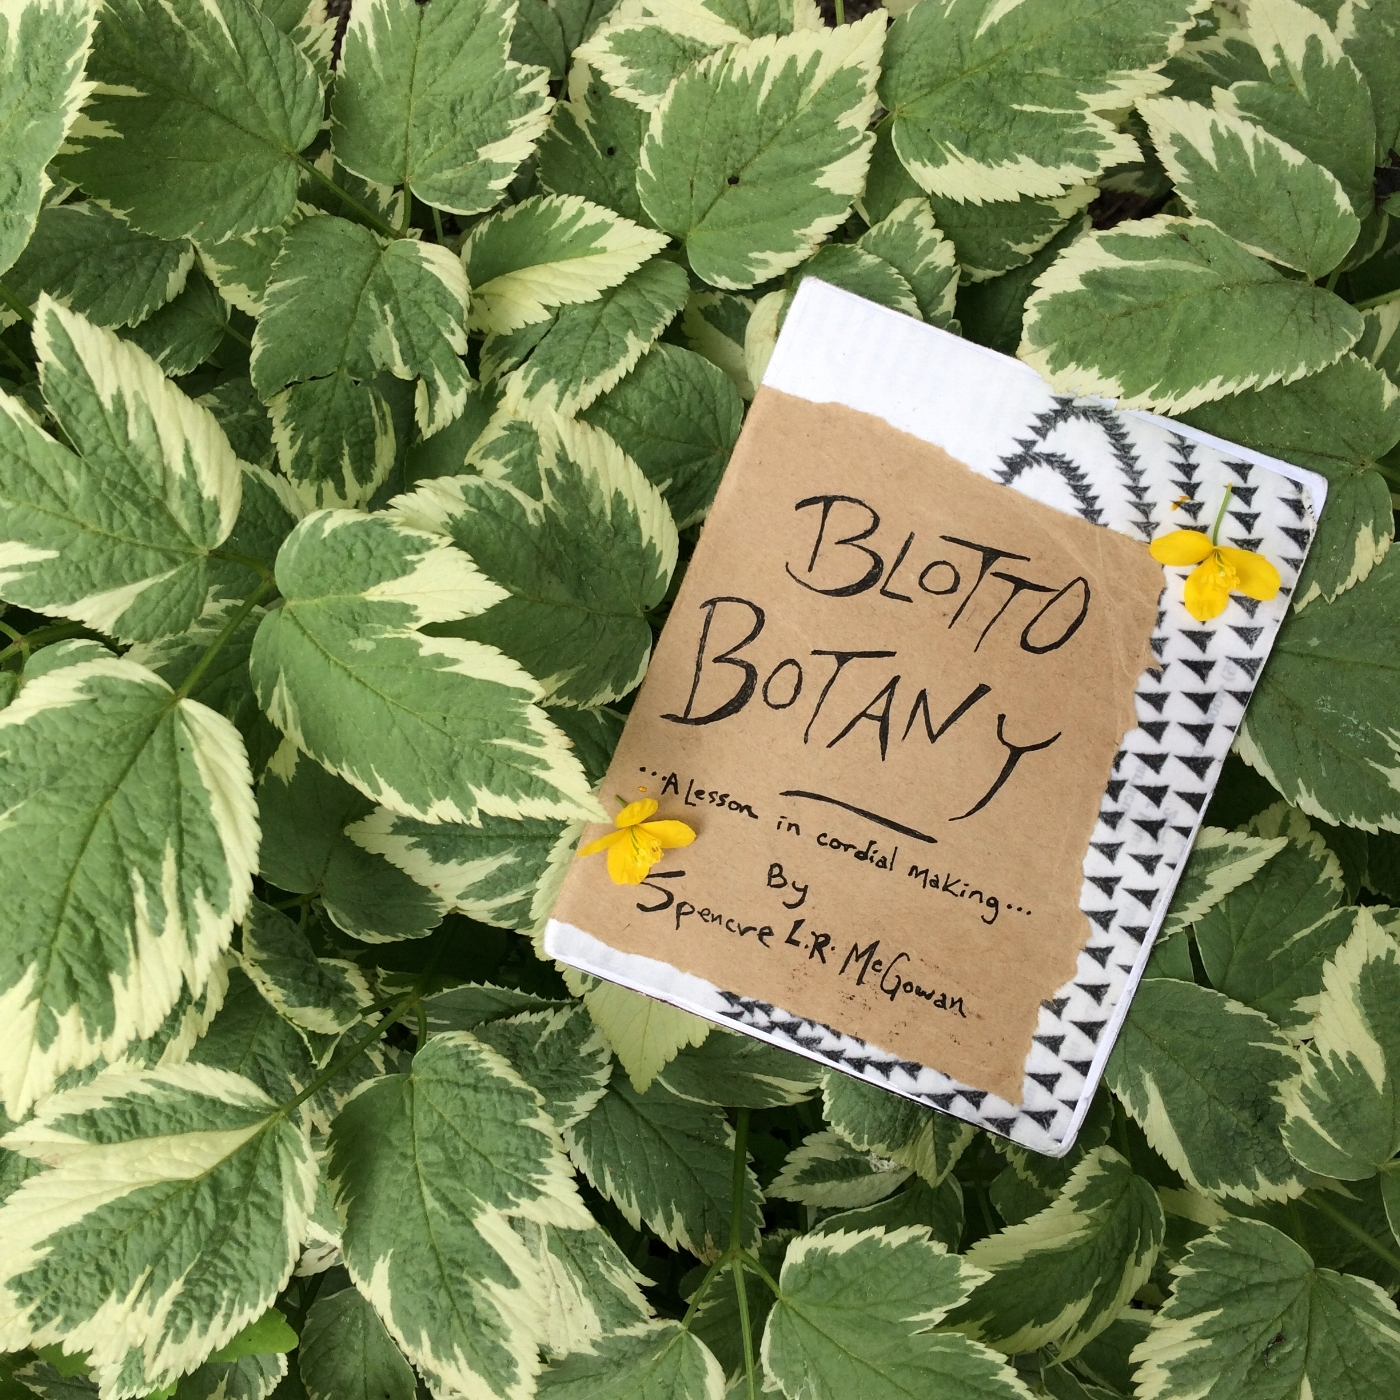 The original Blotto Botany zine